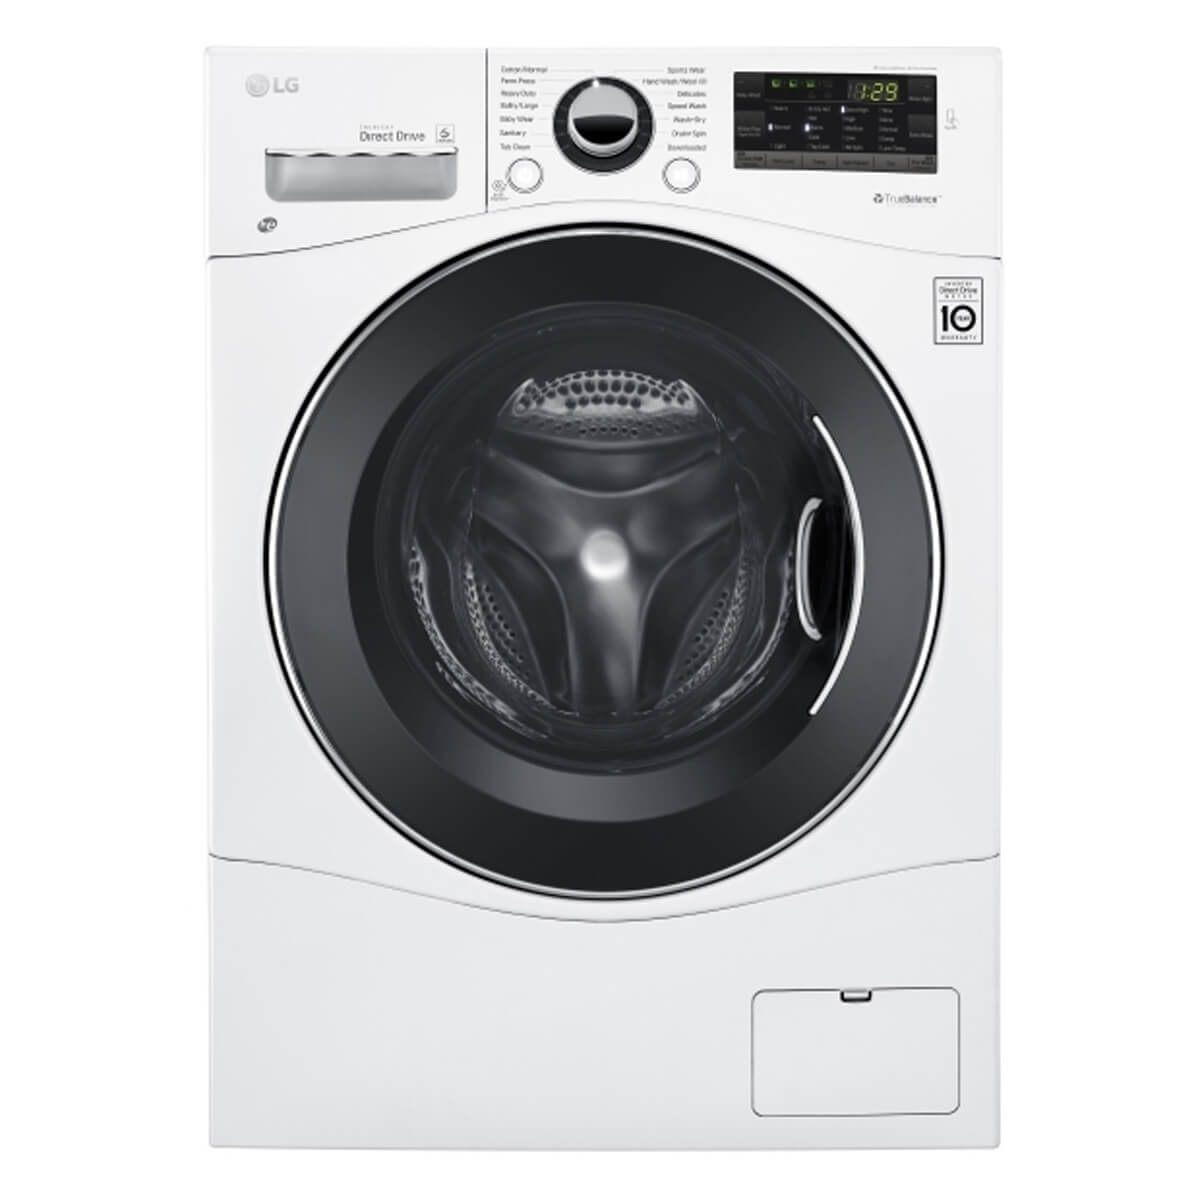 Consider an All-in-One Washer and Dryer